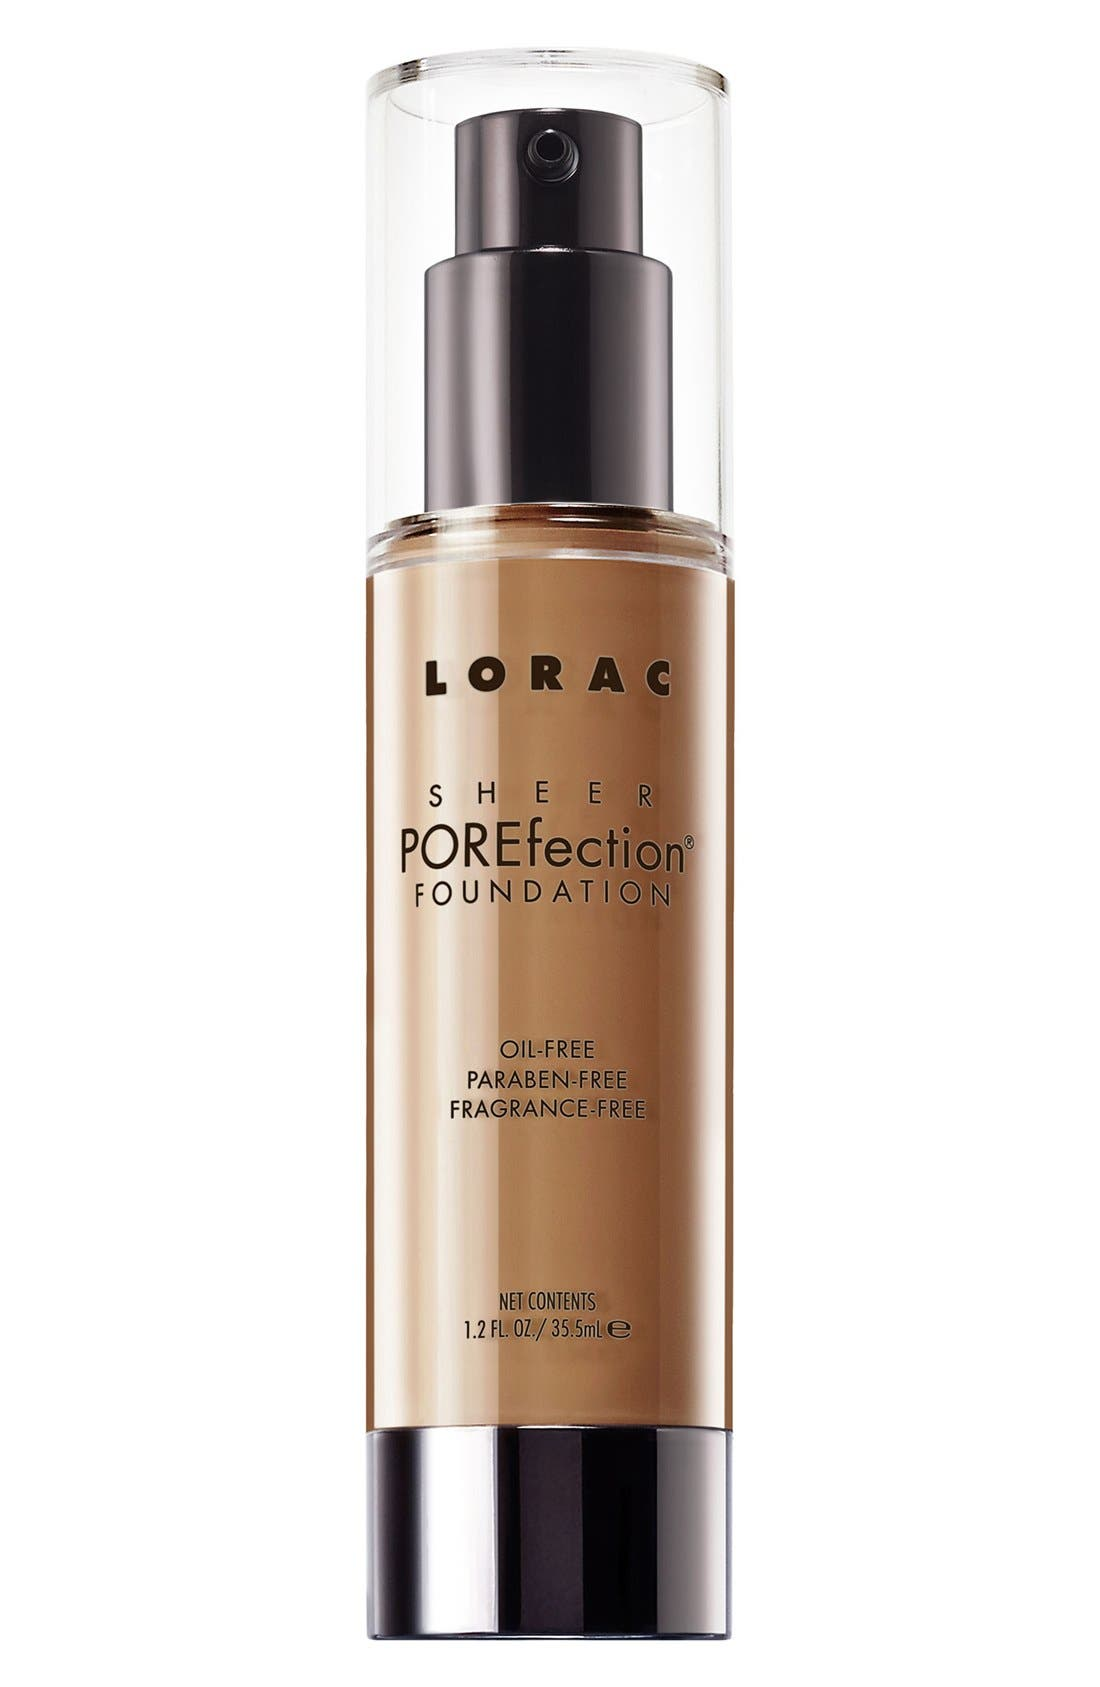 LORAC 'Sheer POREfection®' Foundation